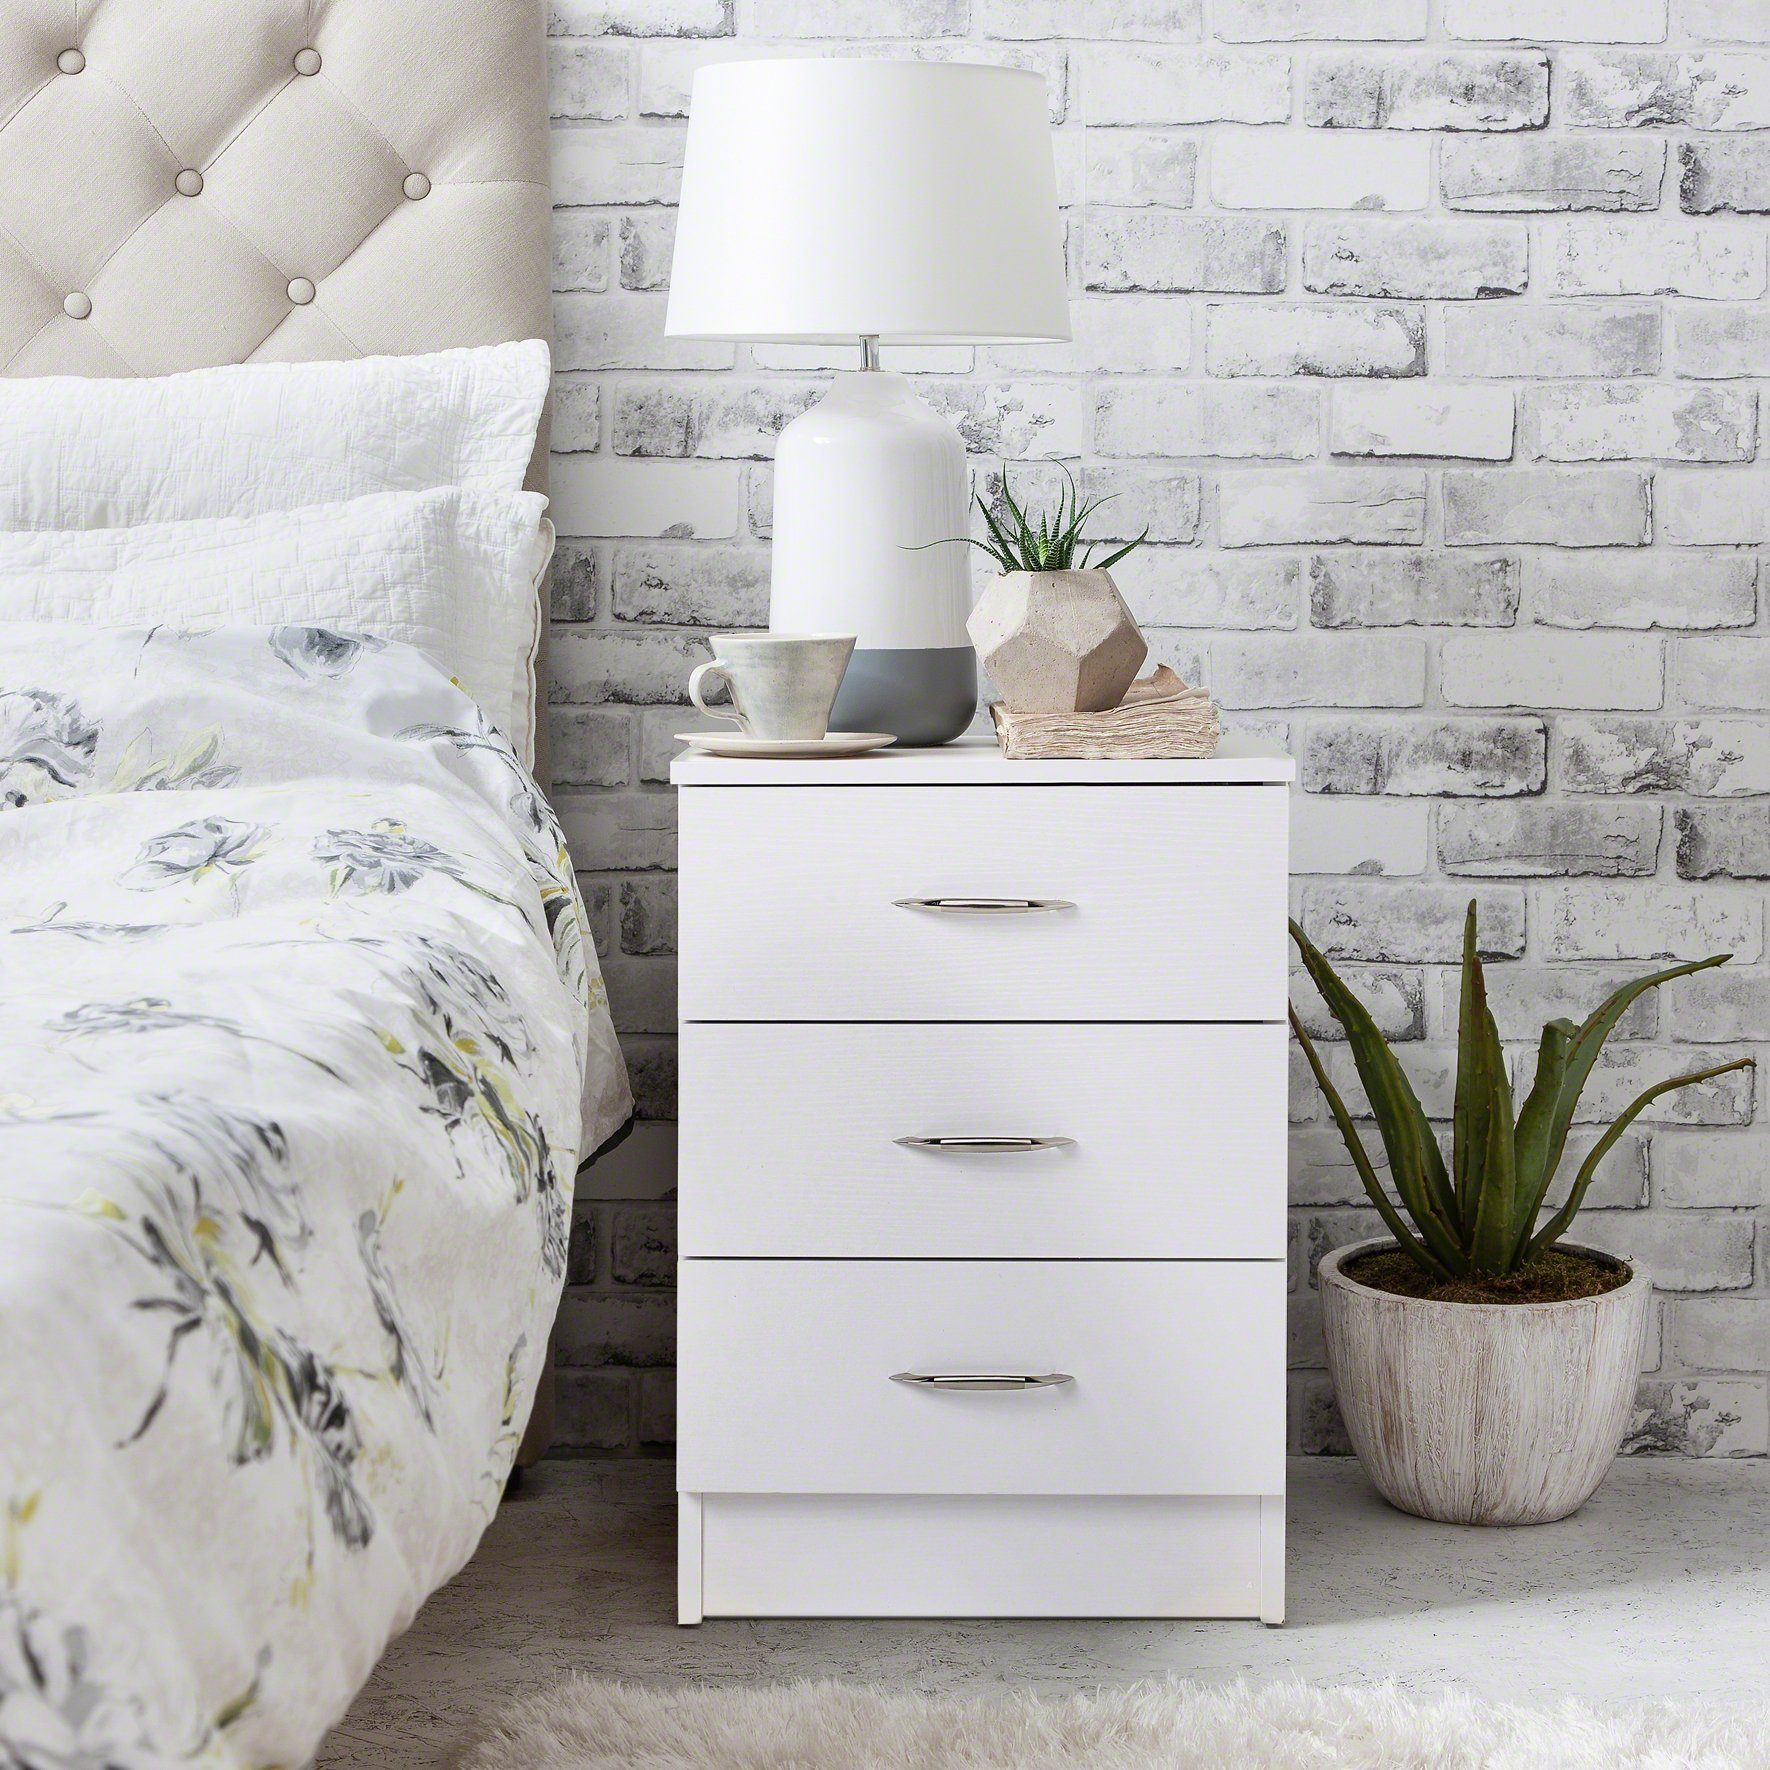 White Bedside Tables Cabinet - 10 Drawers